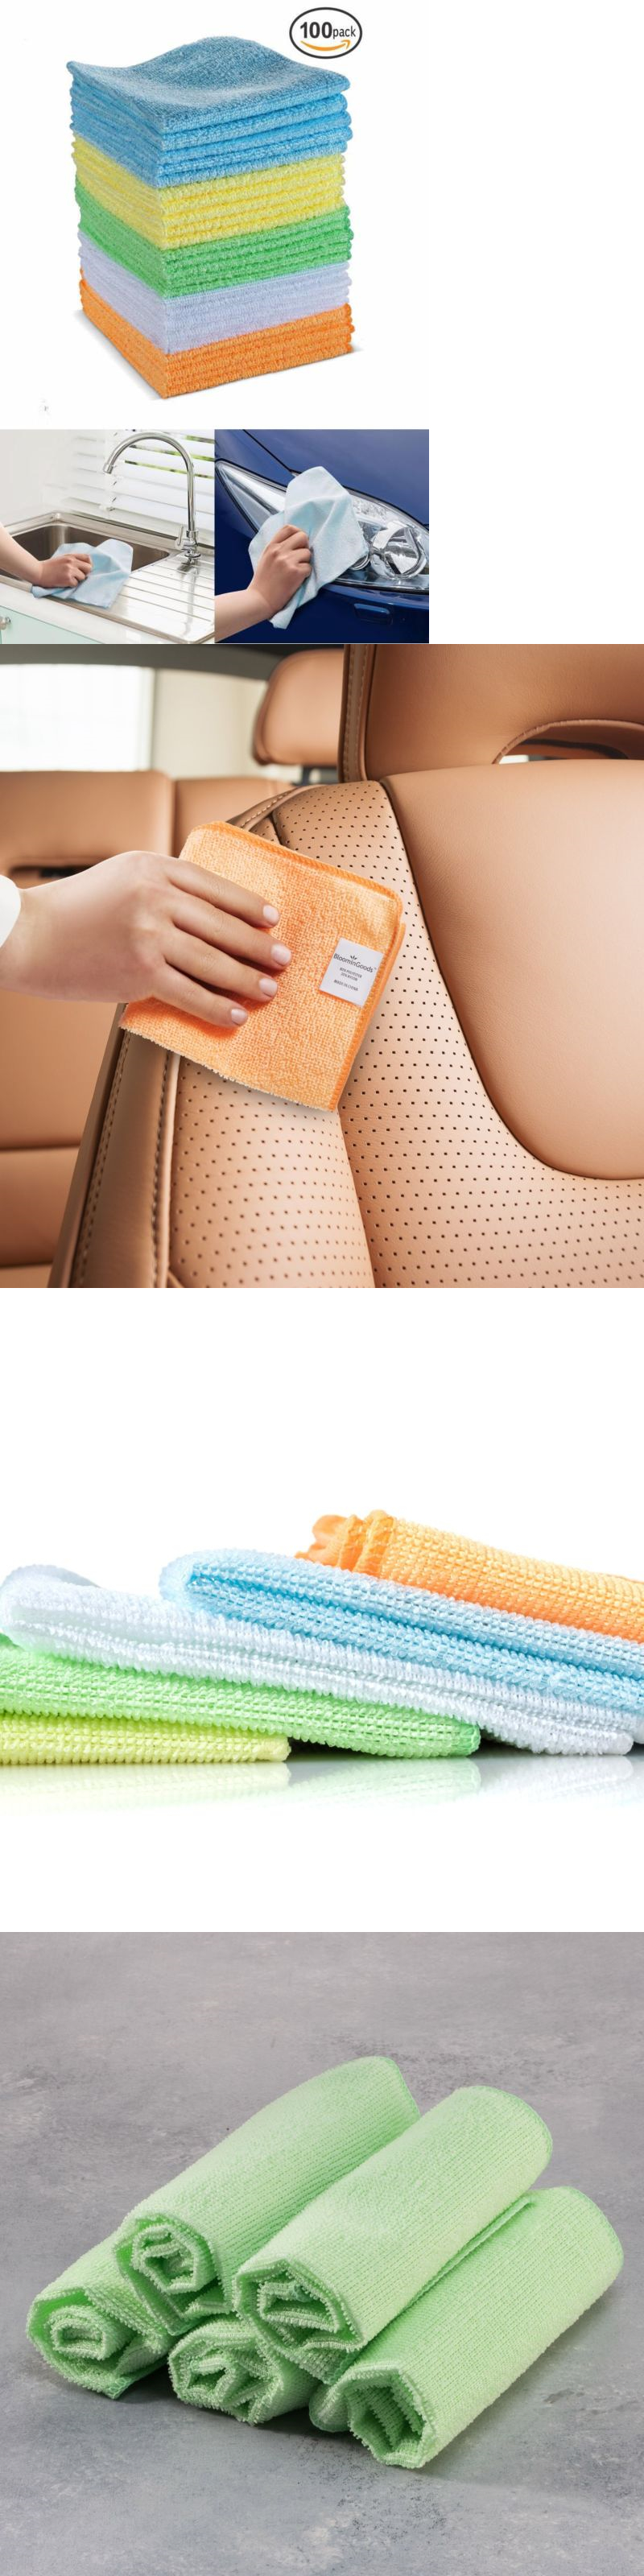 Cleaning towels and cloths microfiber cleaning cloth